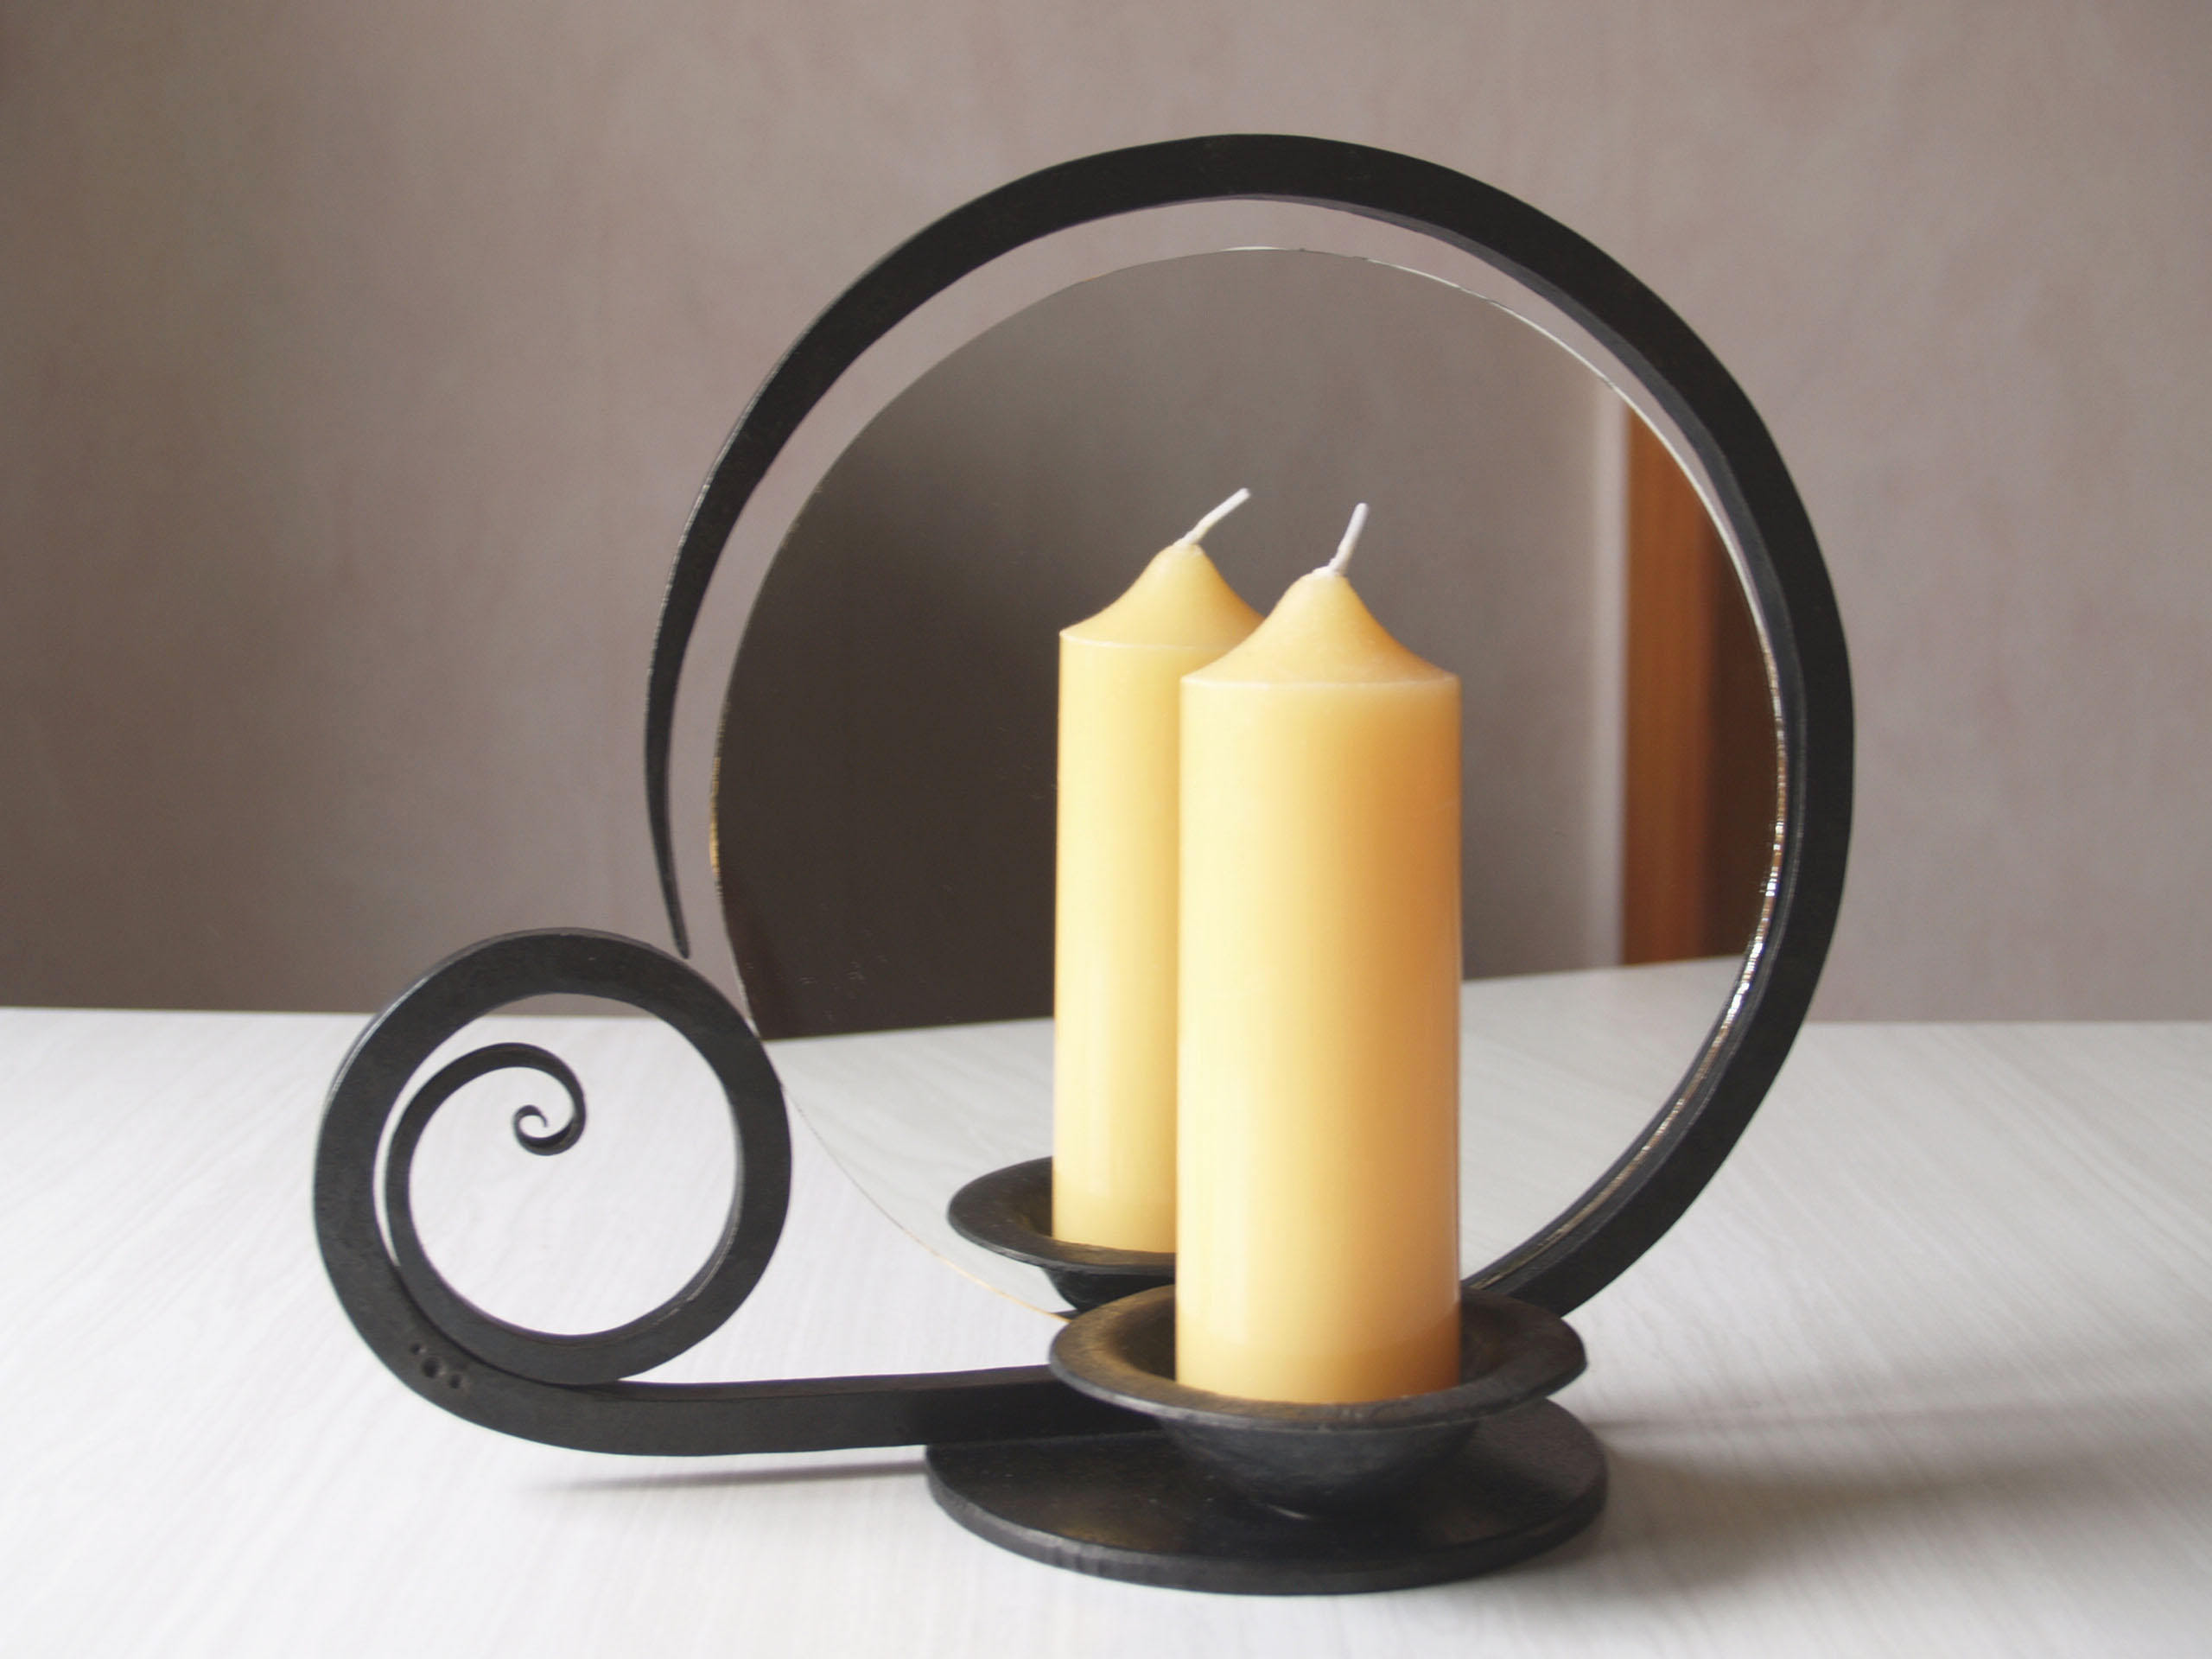 Candle holder with mirror by 3threesuns on DeviantArt